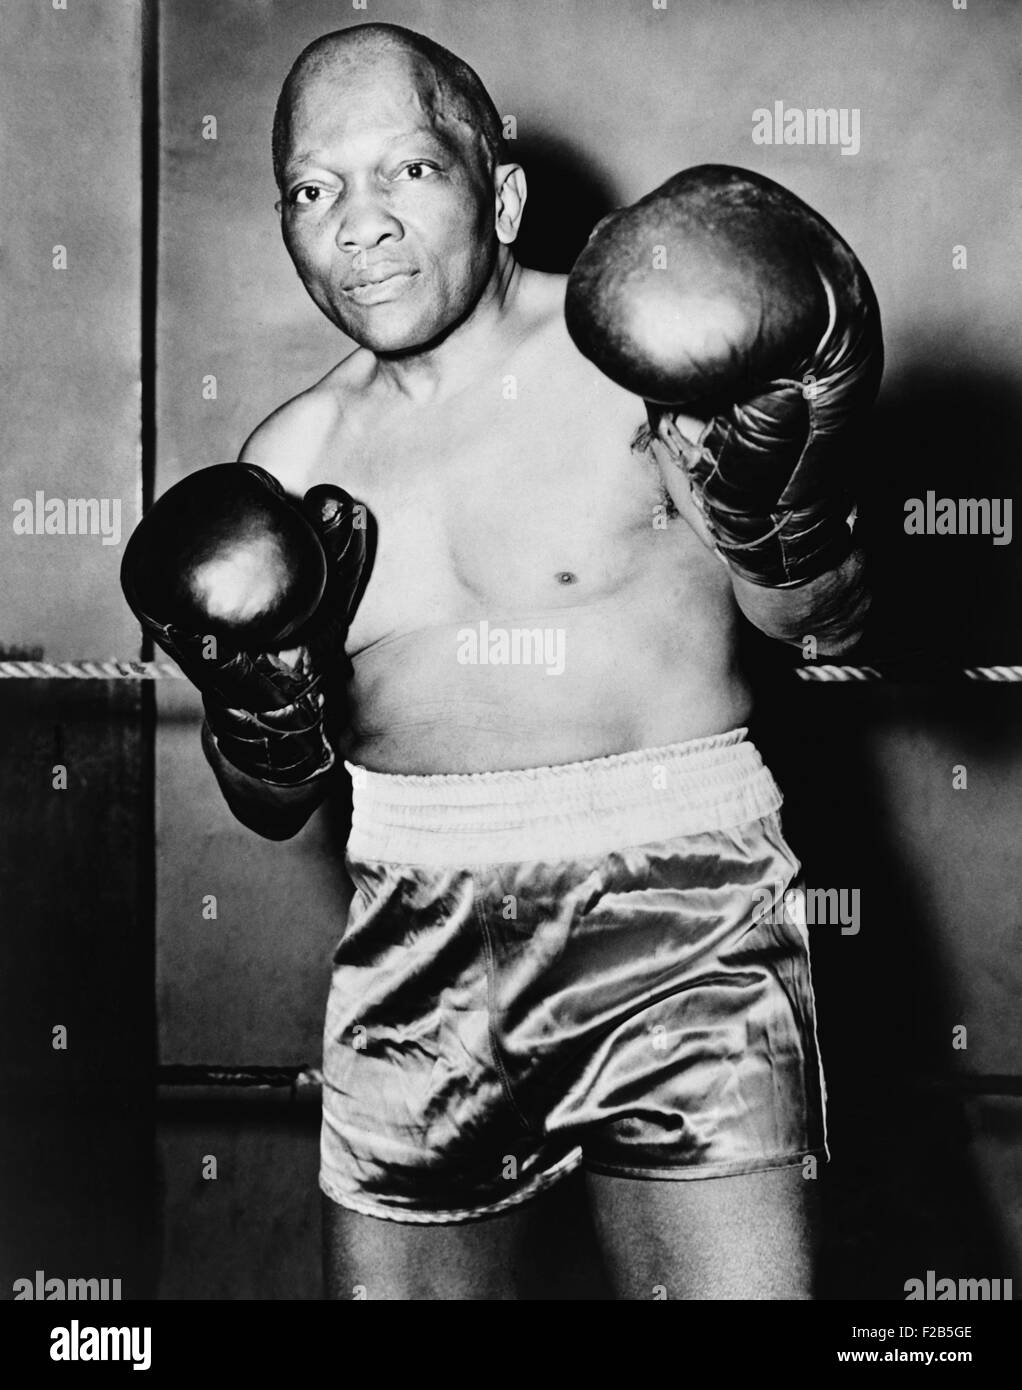 Former Heavyweight champion Jack Johnson in boxing pose. Ca. 1930s. - (BSLOC_2014_17_144) - Stock Image